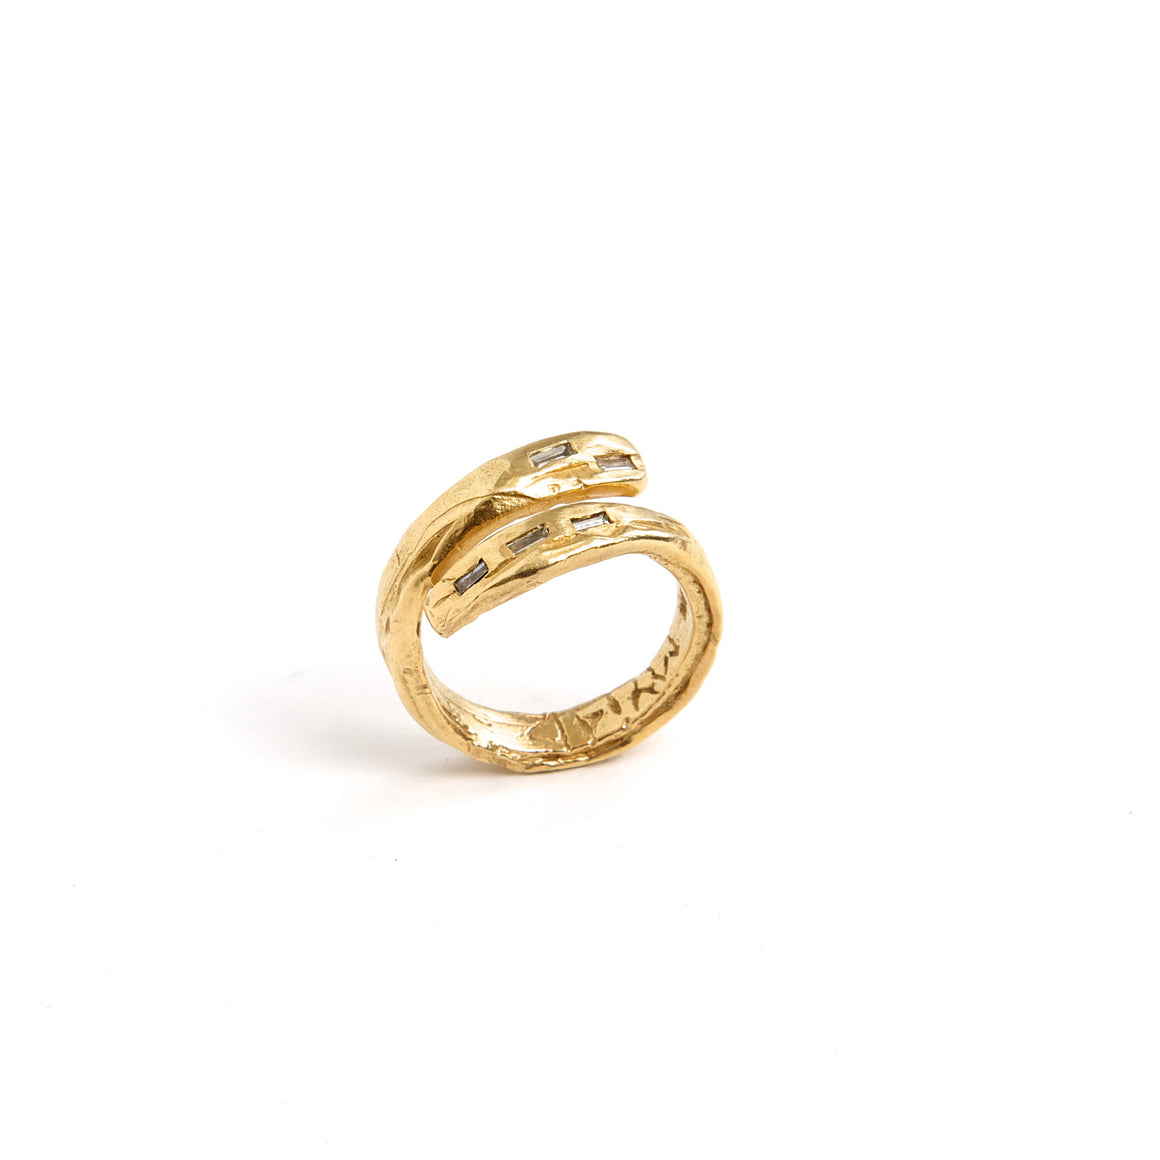 Spine Ring in gold with Five Diamond Baguettes Design by Alexandra Koumba